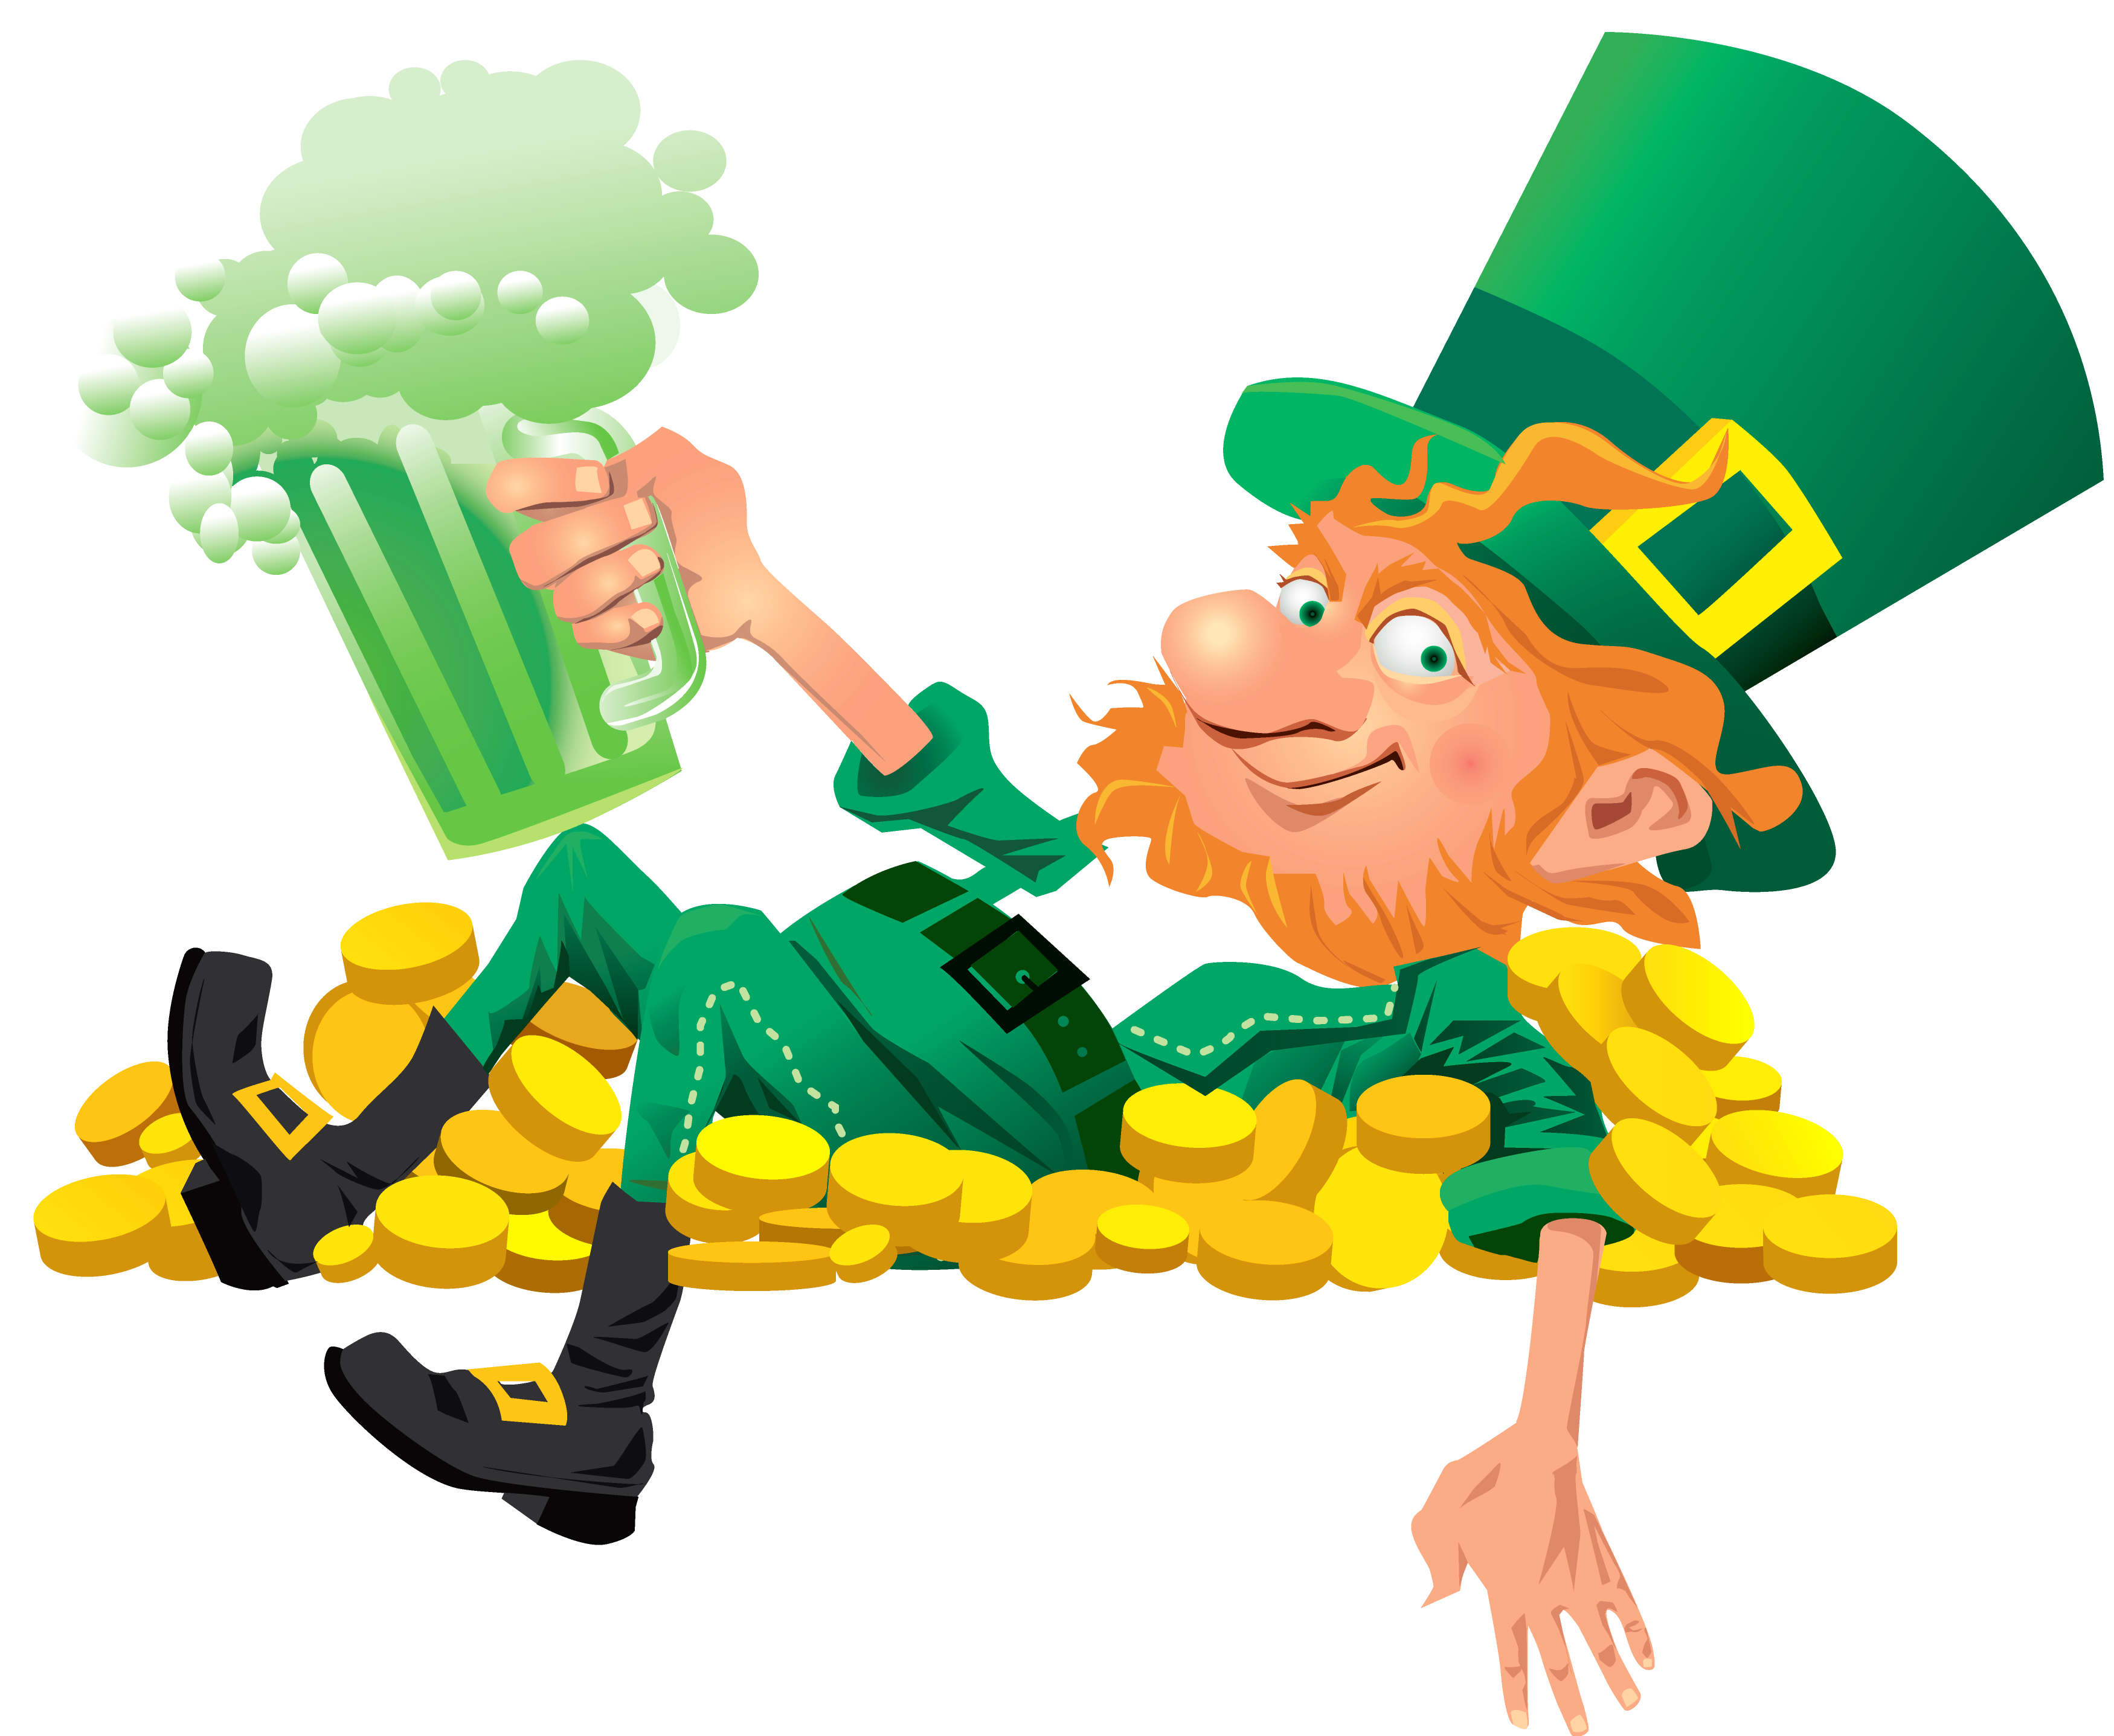 Green Day clipart leprechaun Leprechaun Leprechaun Images Beer pub